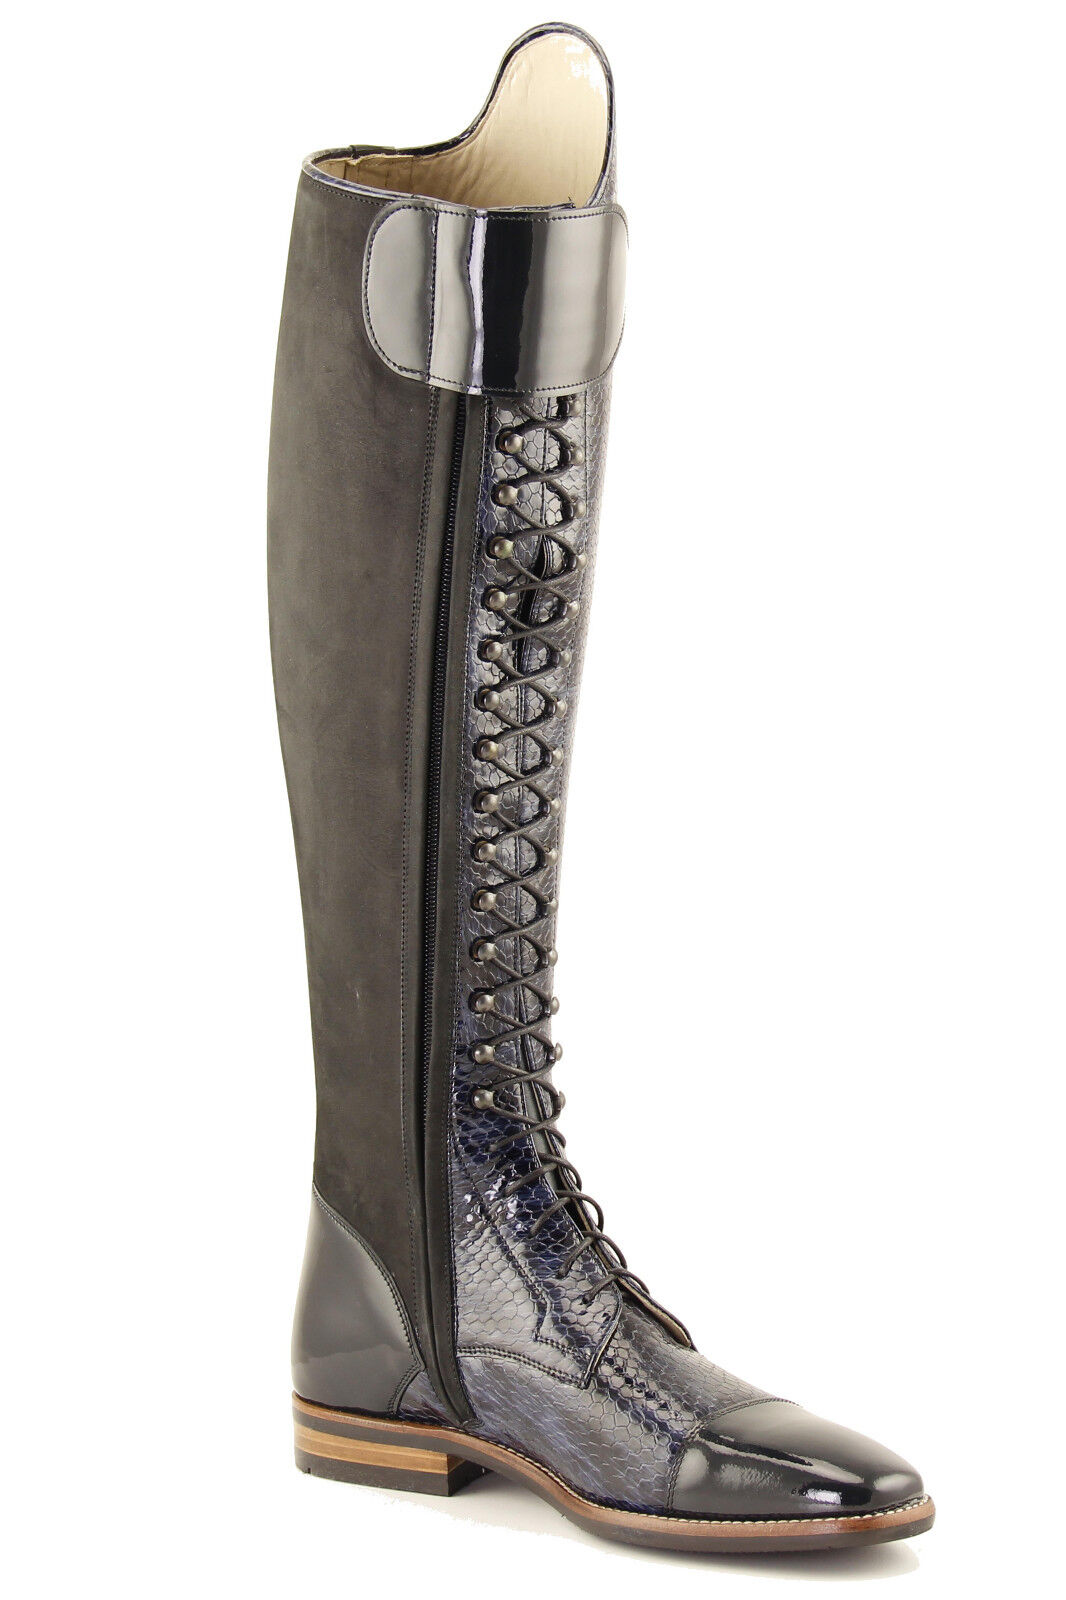 PETRIE Florance  Stiefel -All -All Stiefel Größes - NEW  Front Laces and Zipper bc2679